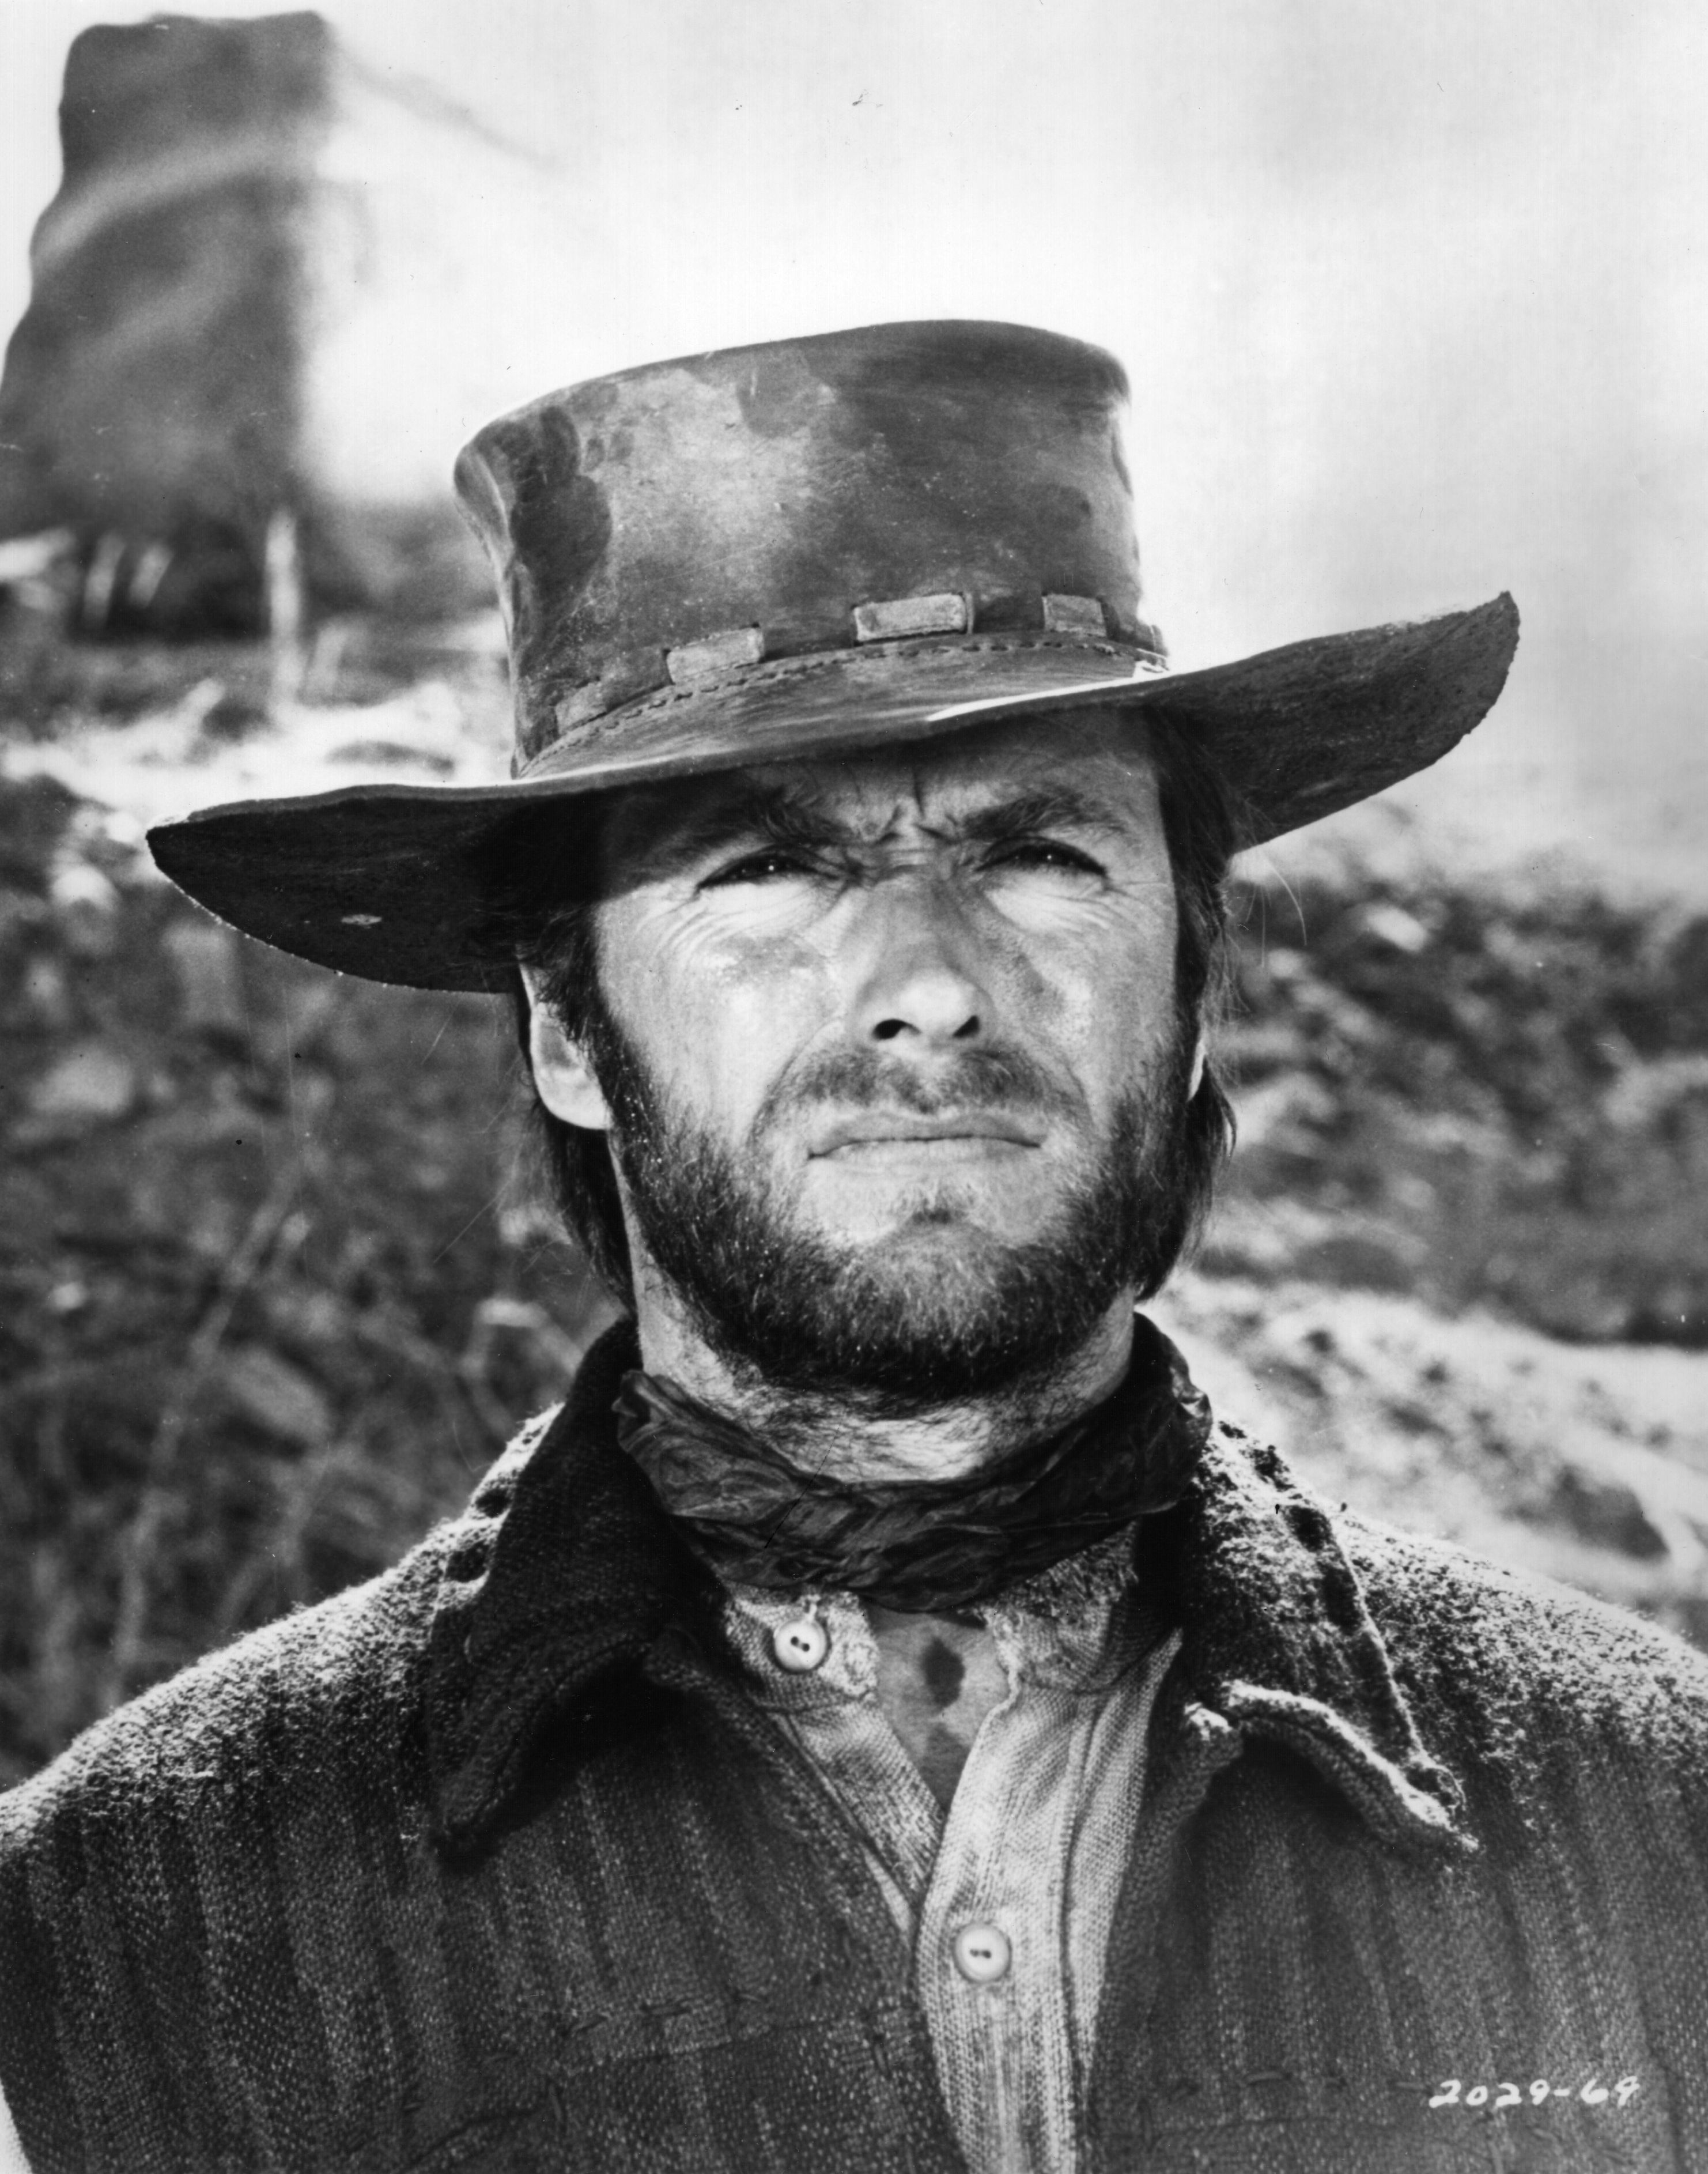 Clint Eastwood as the Man with No Name circa 1966 | Photo: GettyImages